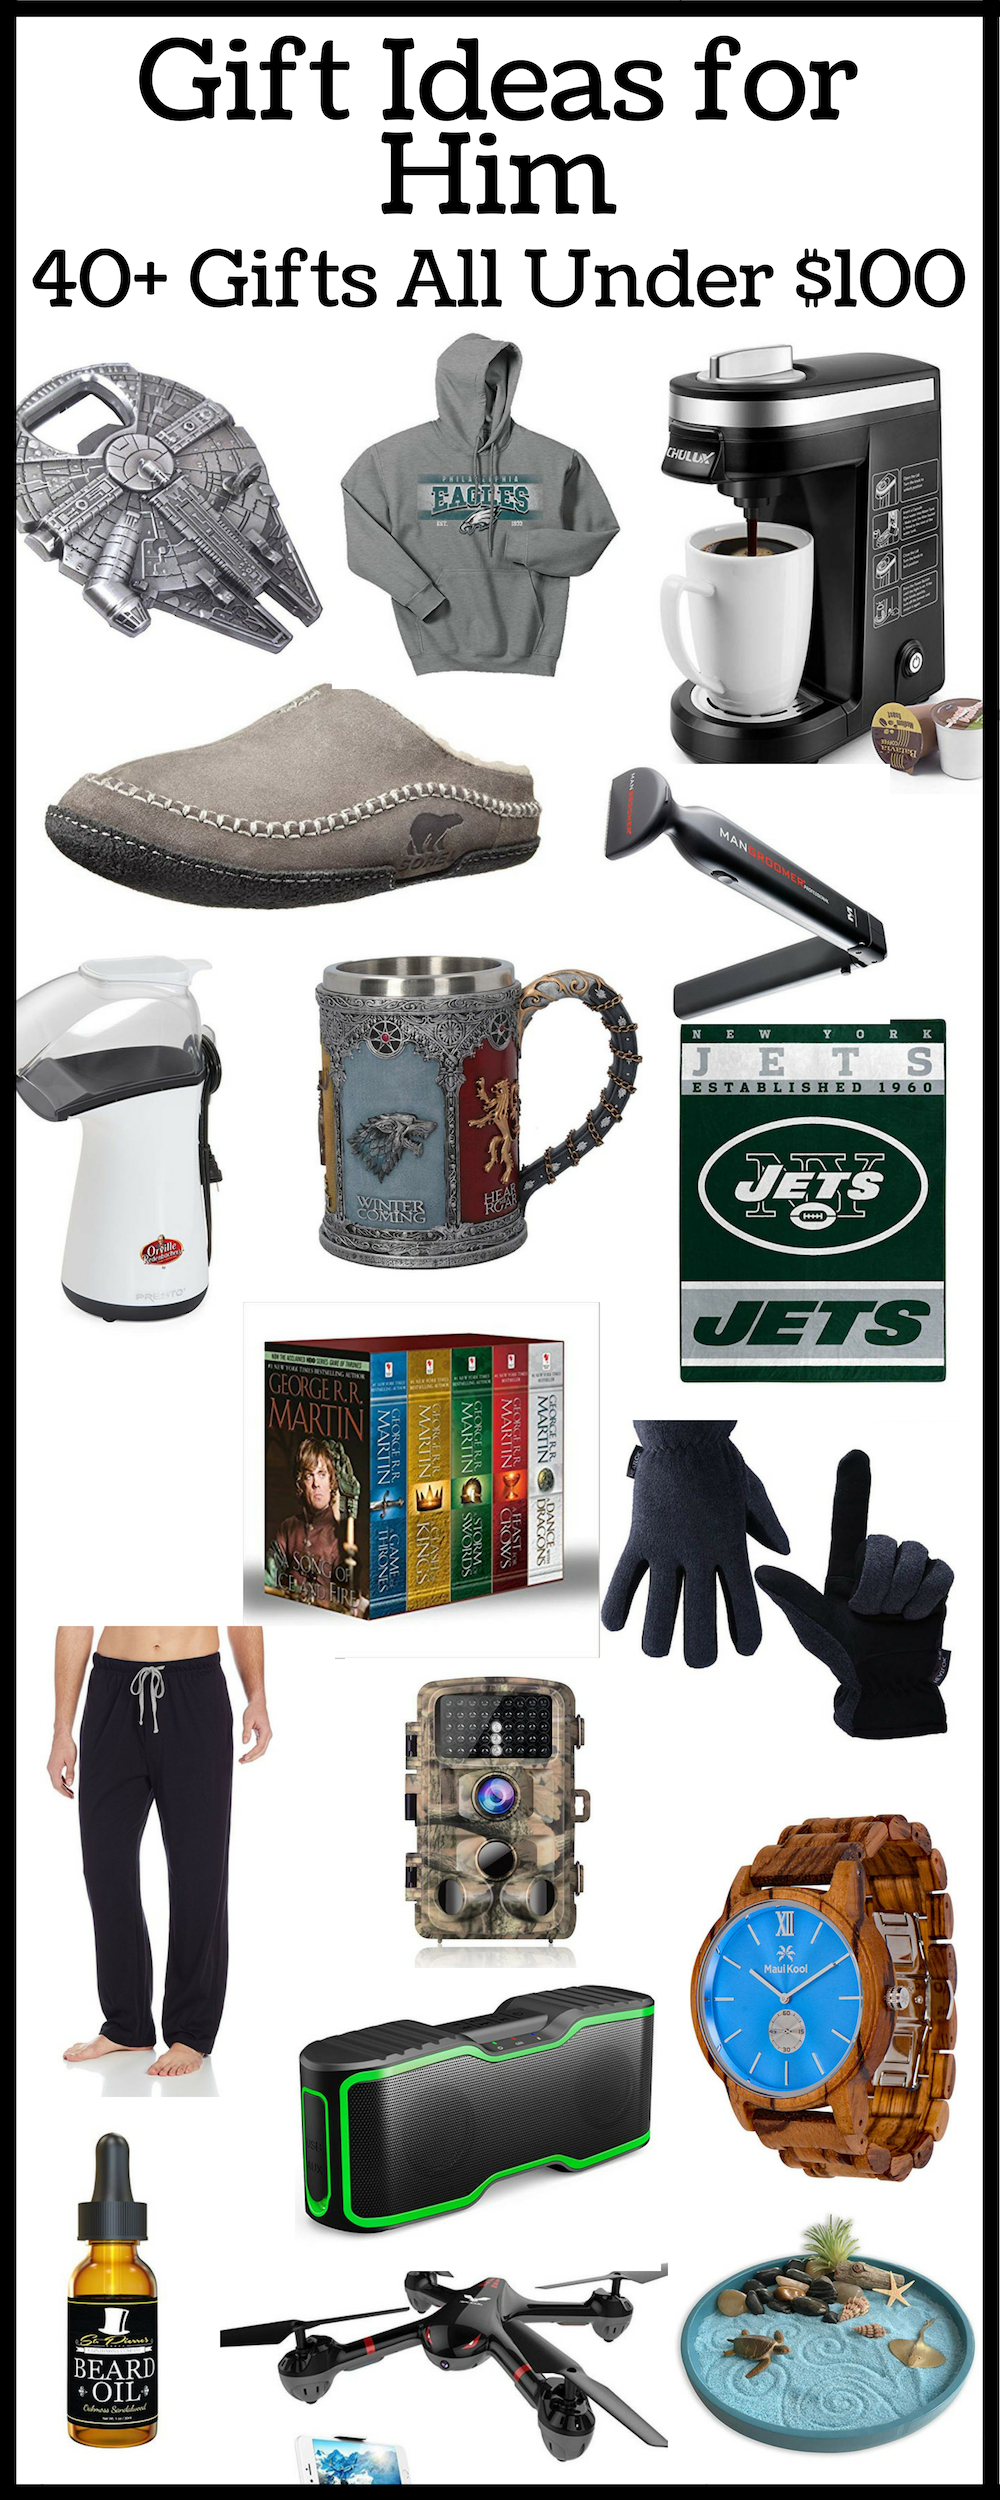 Gift Ideas for Him -Budget Gift Ideas. Gifts for Father's Day - gift idea for boyfriend - gift guide for men - Need ideas on what to get your boyfriend, best friend, brother, uncle, dad, etc. for their birthday, Father's Day, Christmas, anniversary or any other holiday?  Check these out!